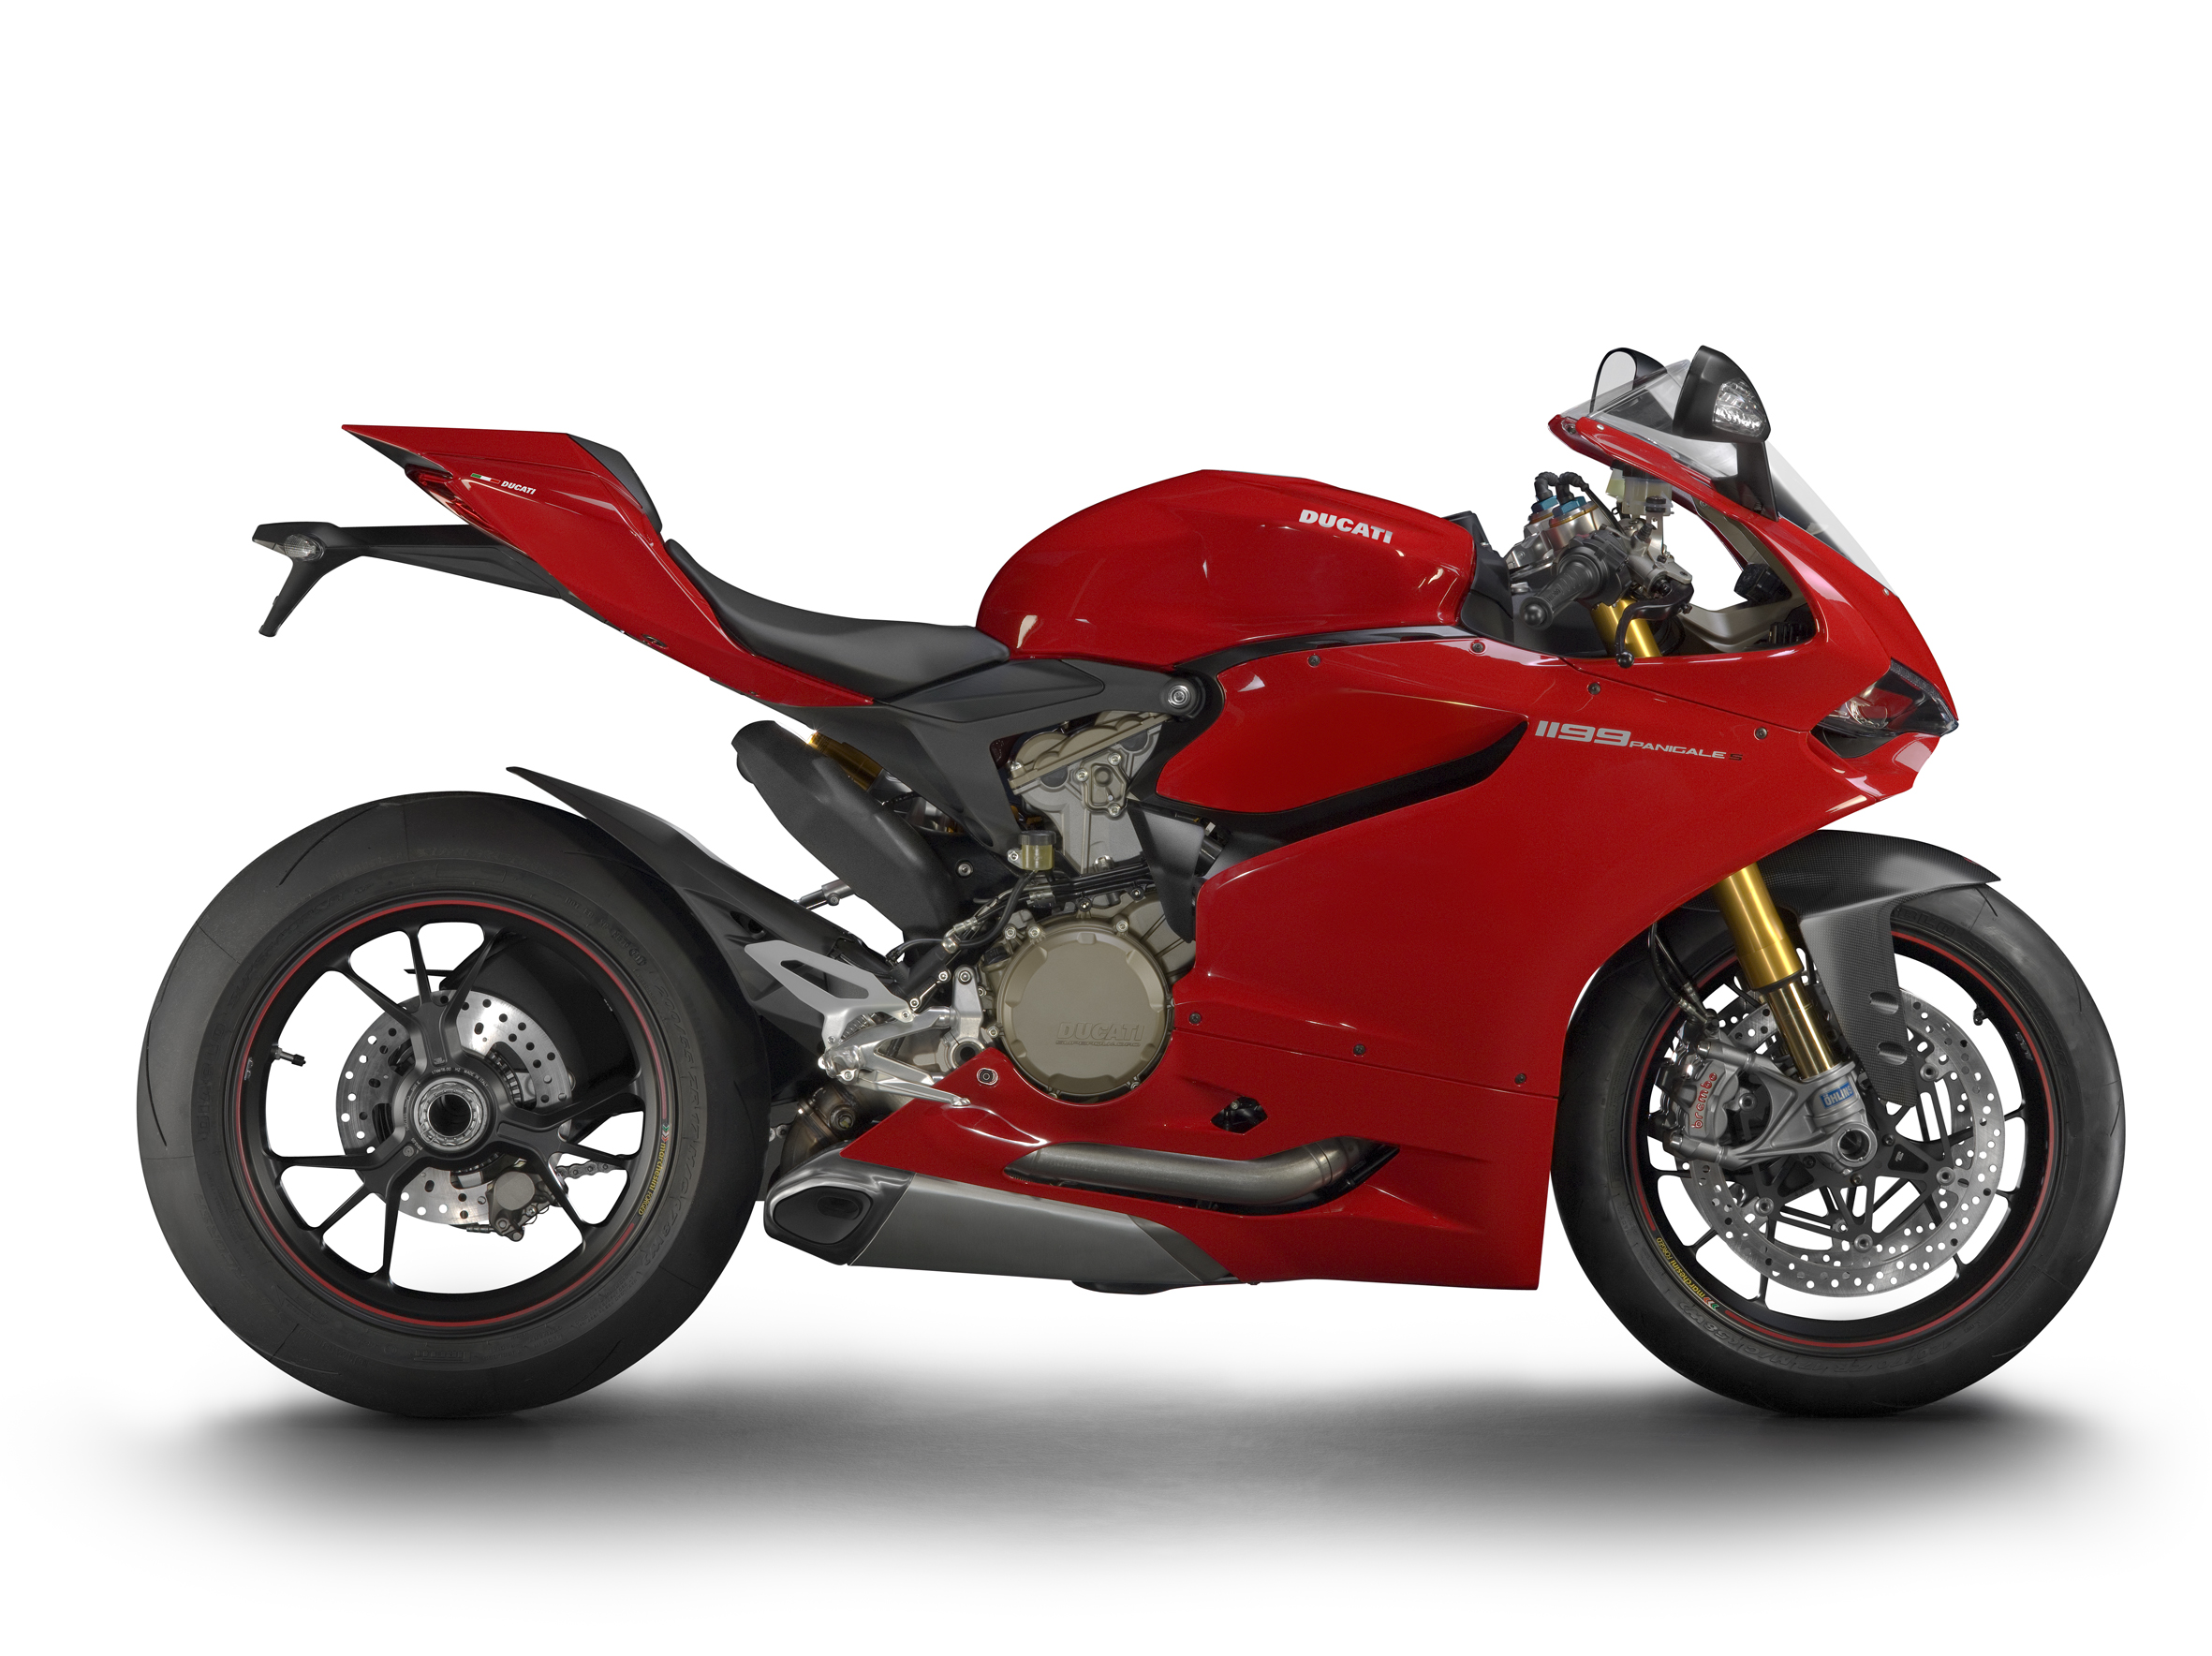 superbike_1199_panigale_s_02